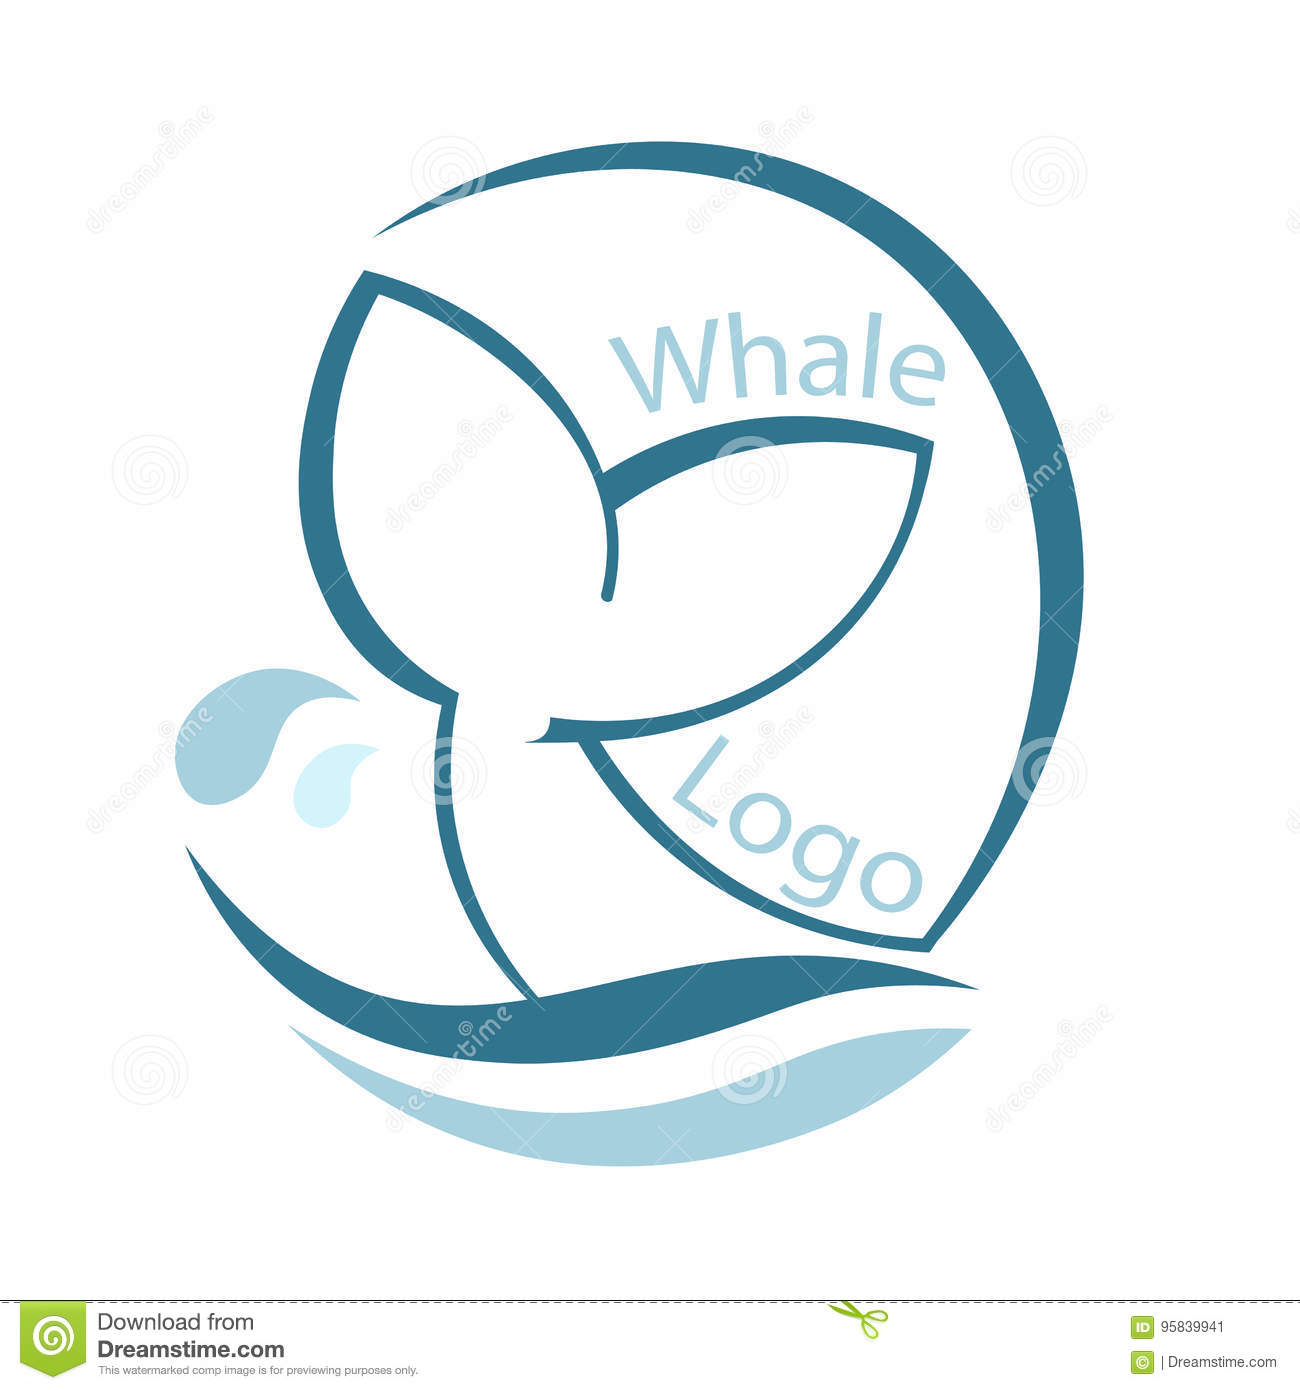 Design with abstract symbol of whale and sea wave vector design with abstract symbol of whale and sea wave vector illustration biocorpaavc Choice Image